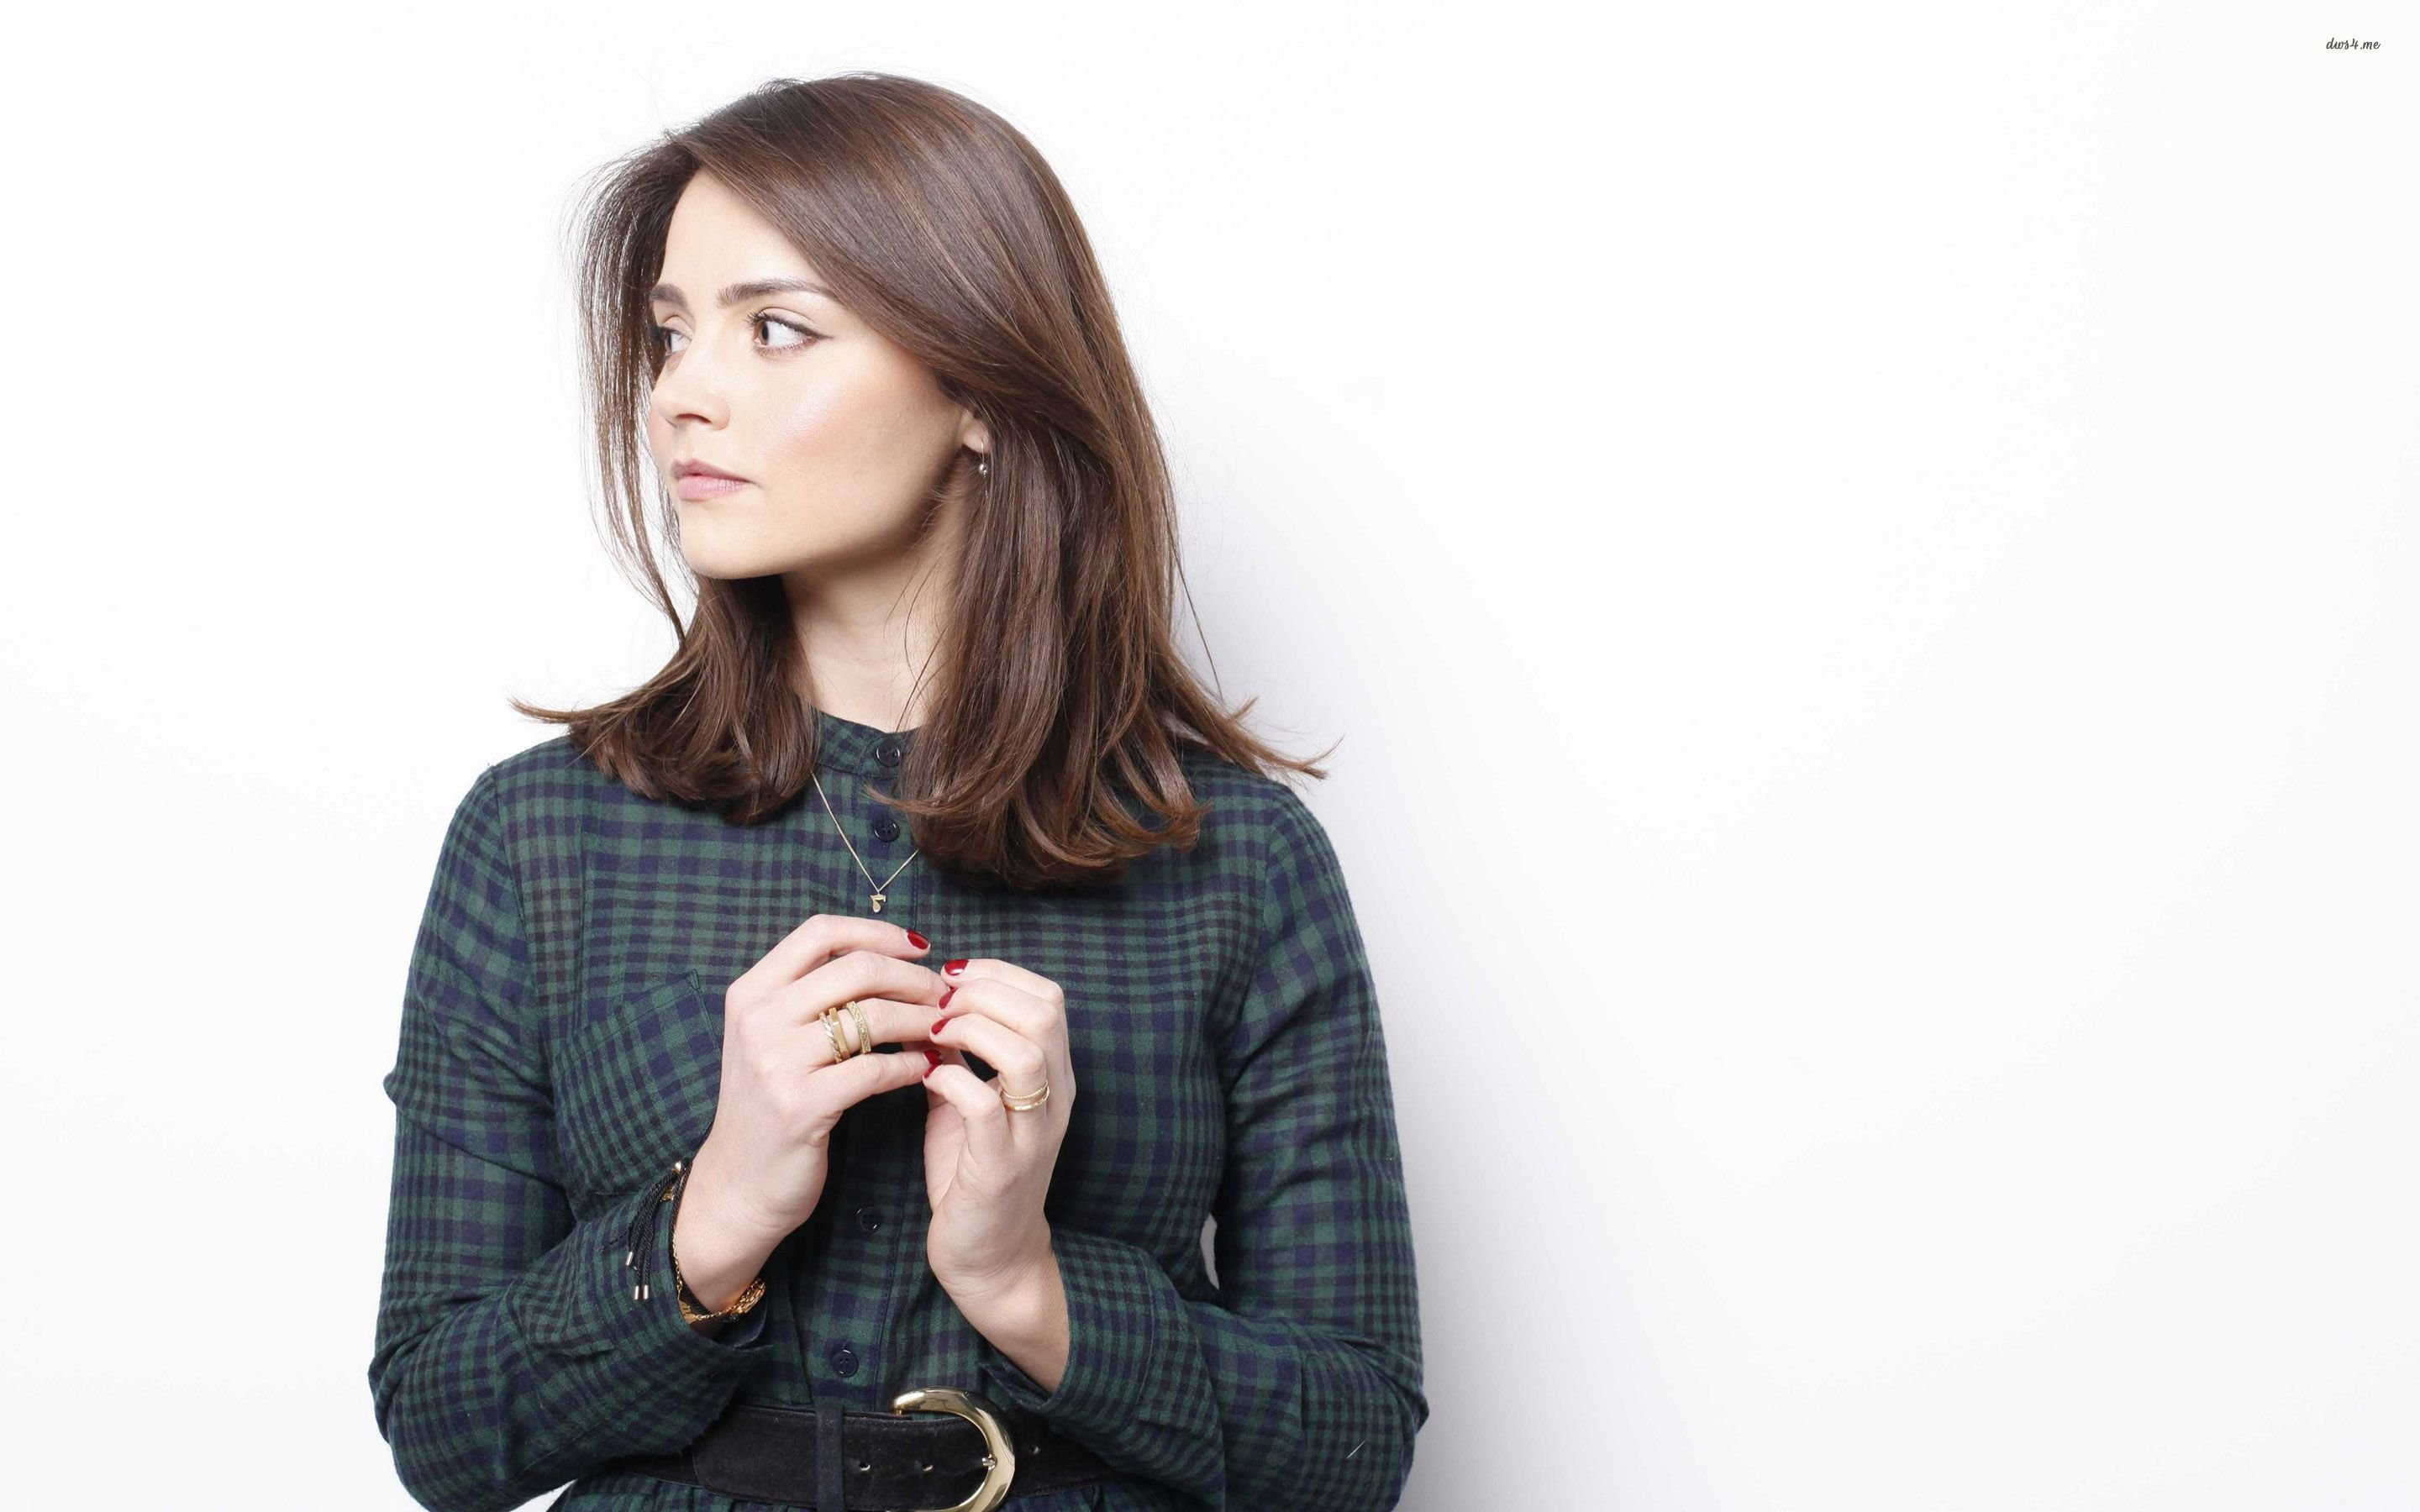 2880x1800 - Jenna-Louise Coleman Wallpapers 11